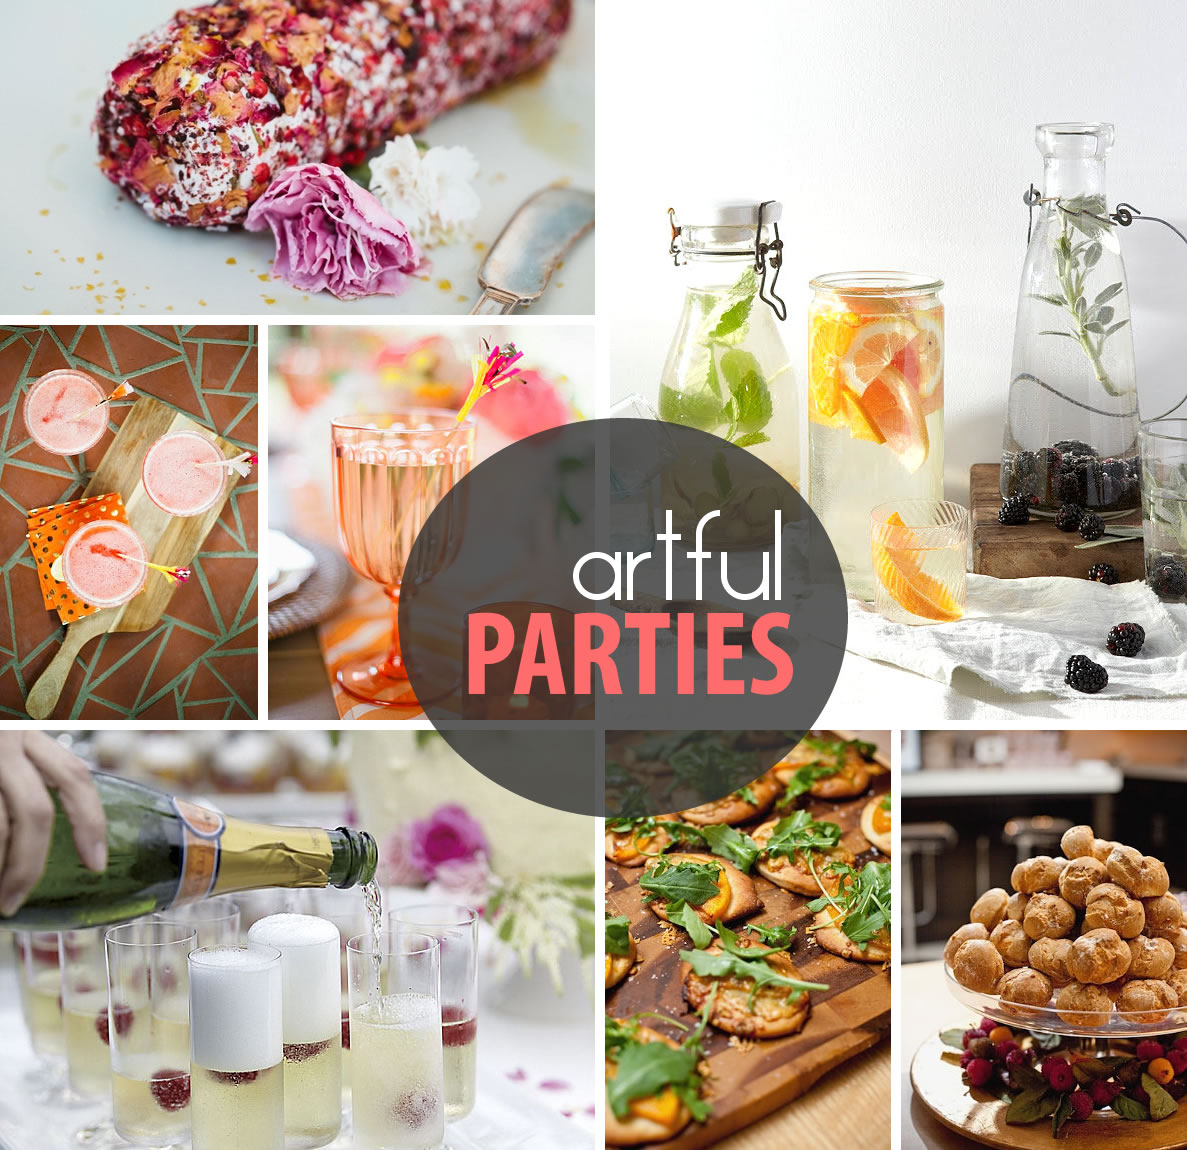 artful parties decor 5 Party Tips for Easy, Artful Entertaining